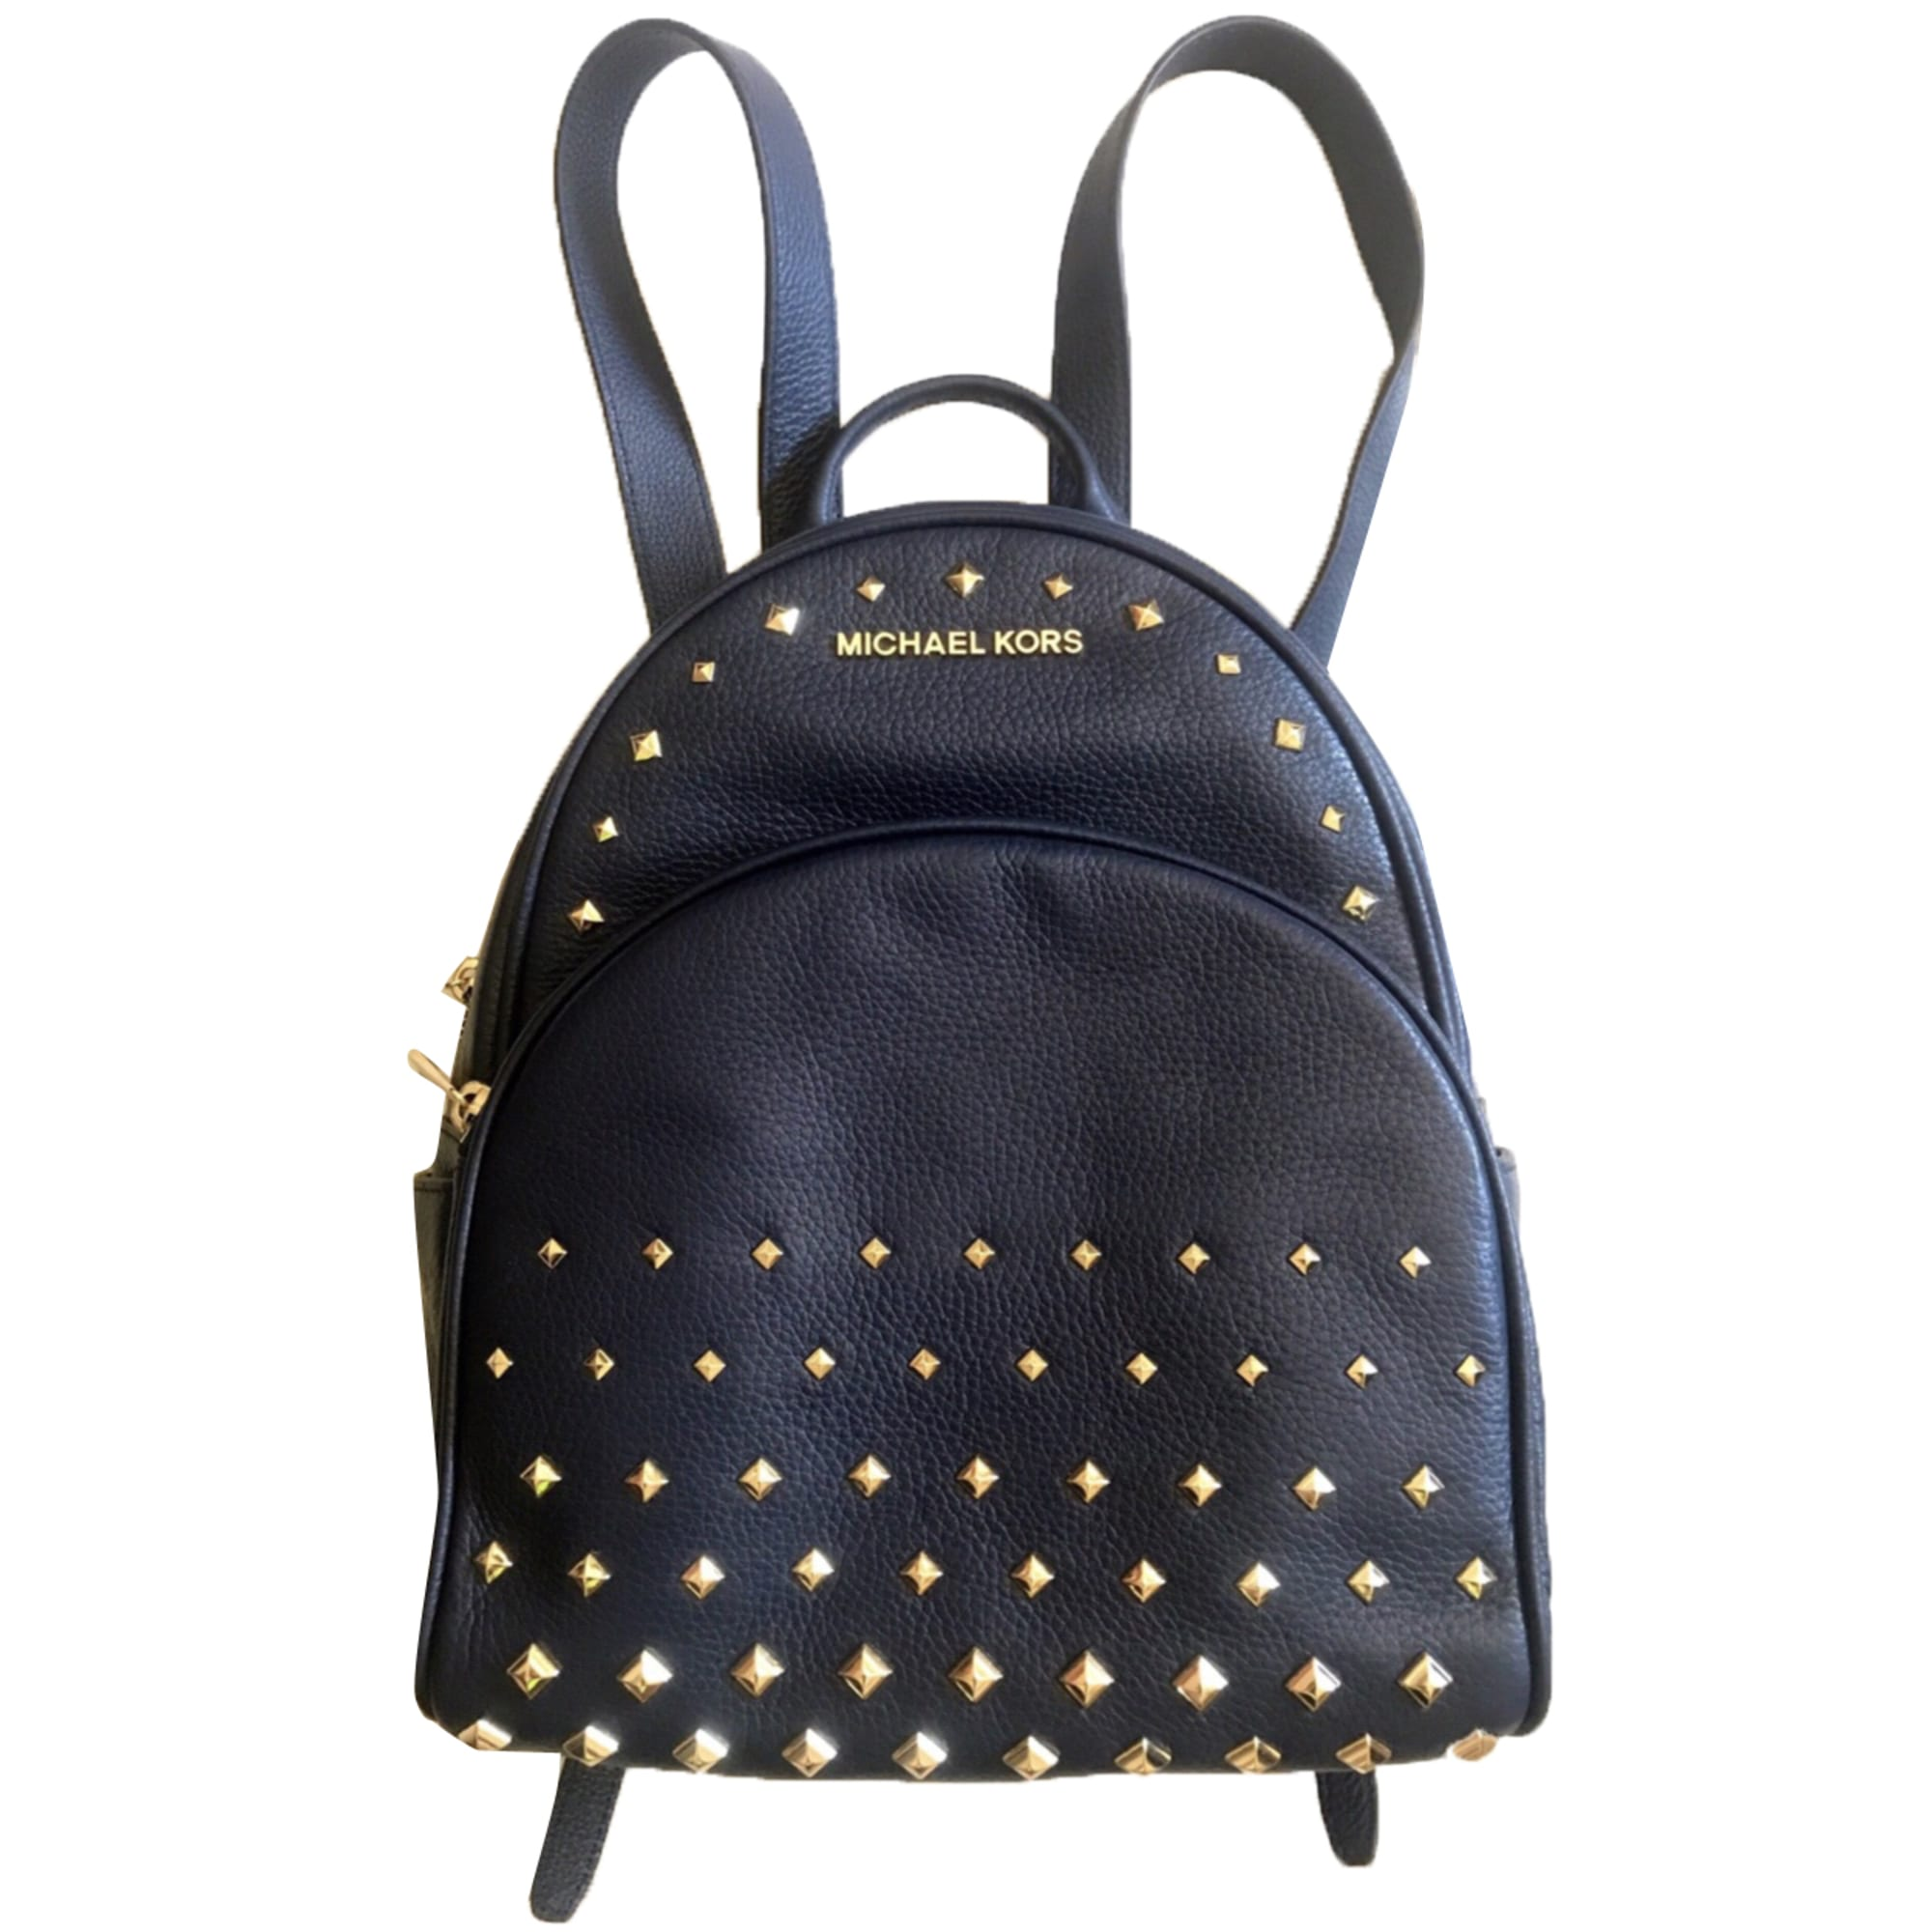 Backpack MICHAEL KORS NAVY